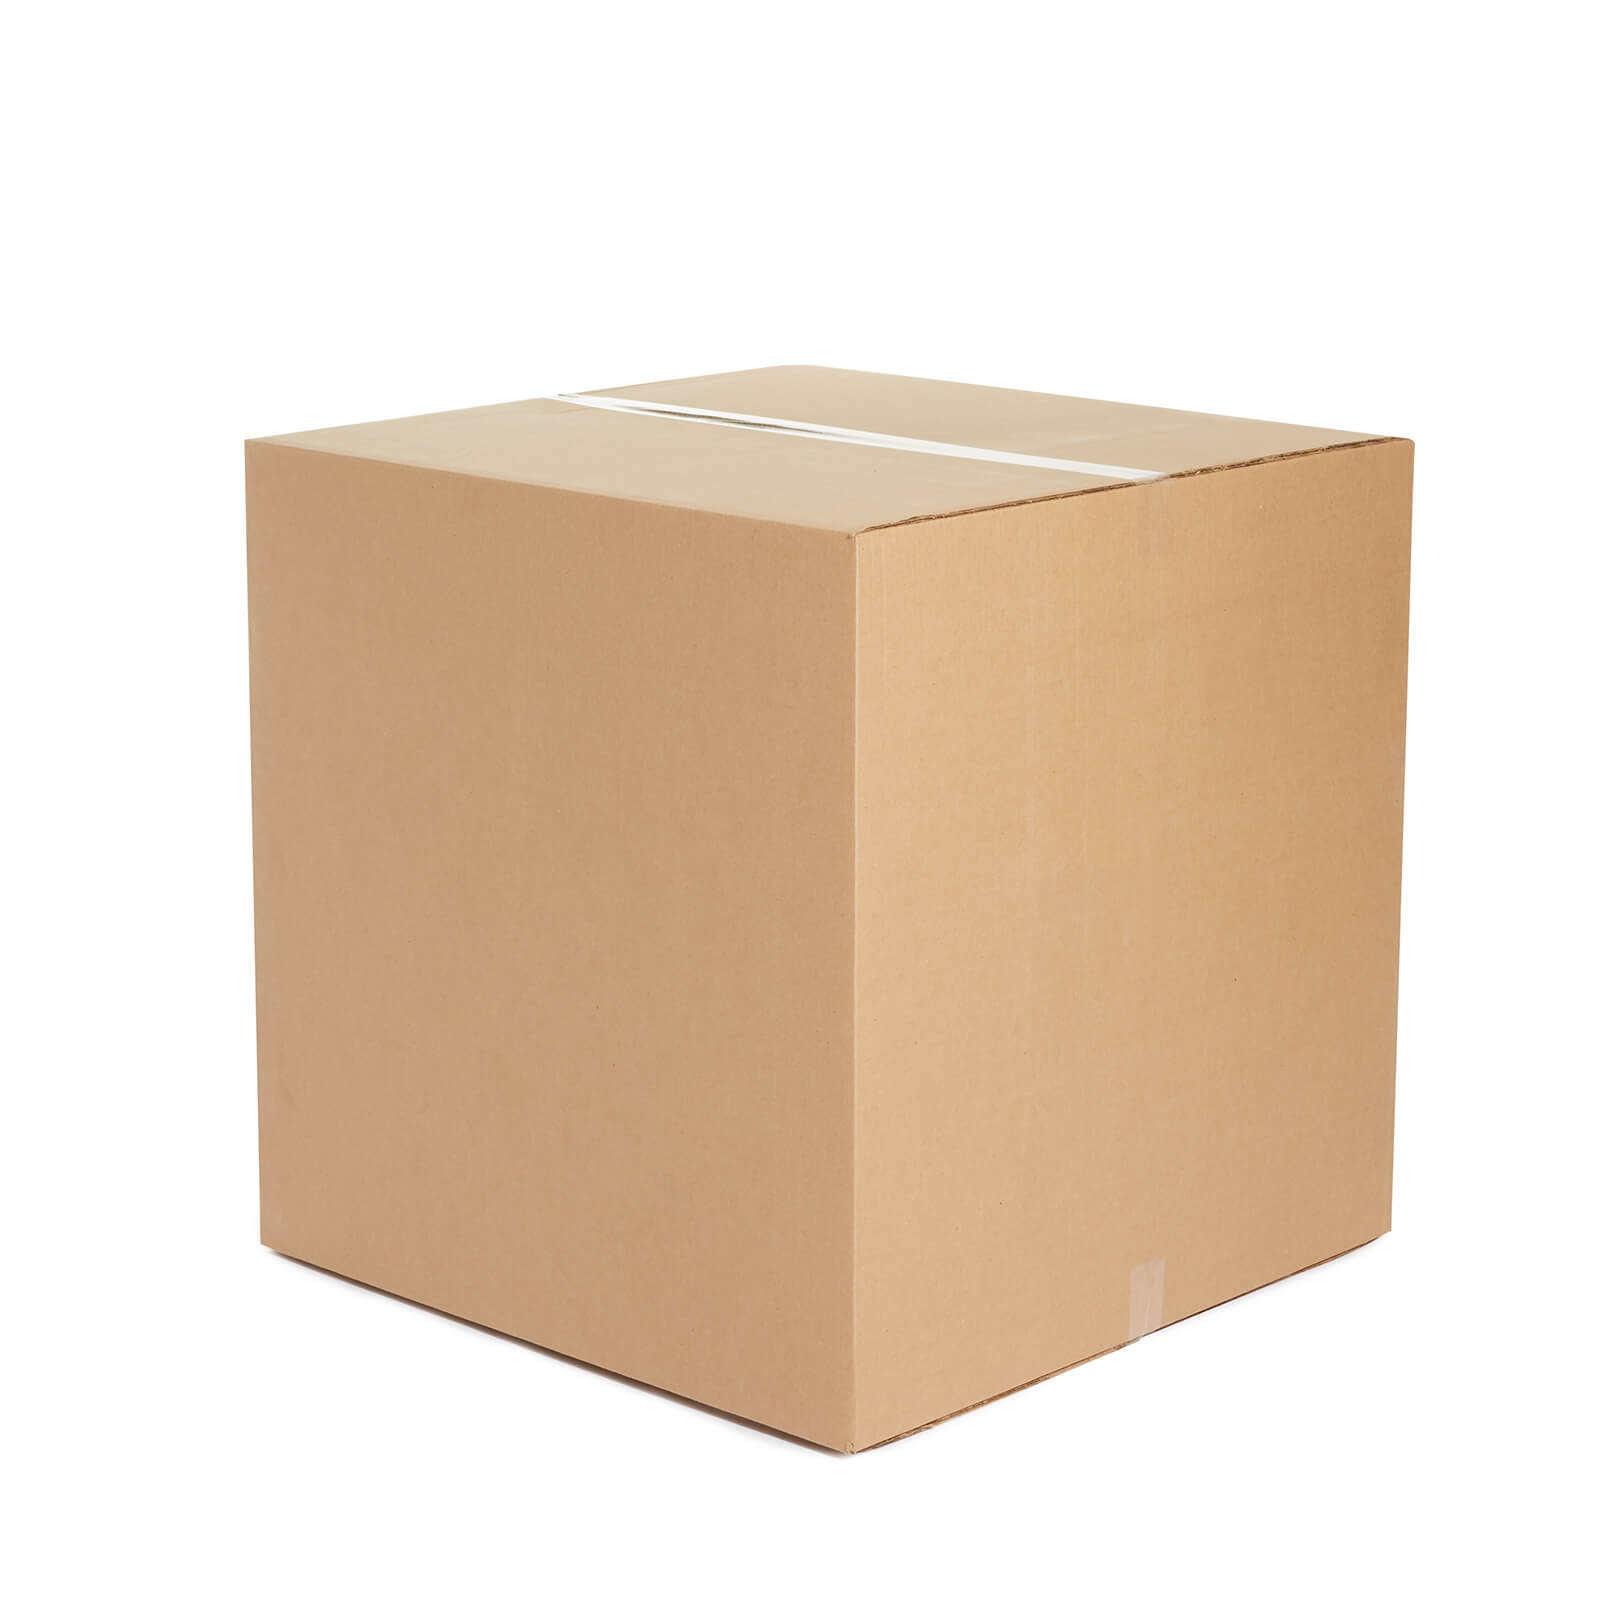 Double Walled Extra Large Heavy Duty Box Packing R Us Moving Packing Shipping Storing Boxes